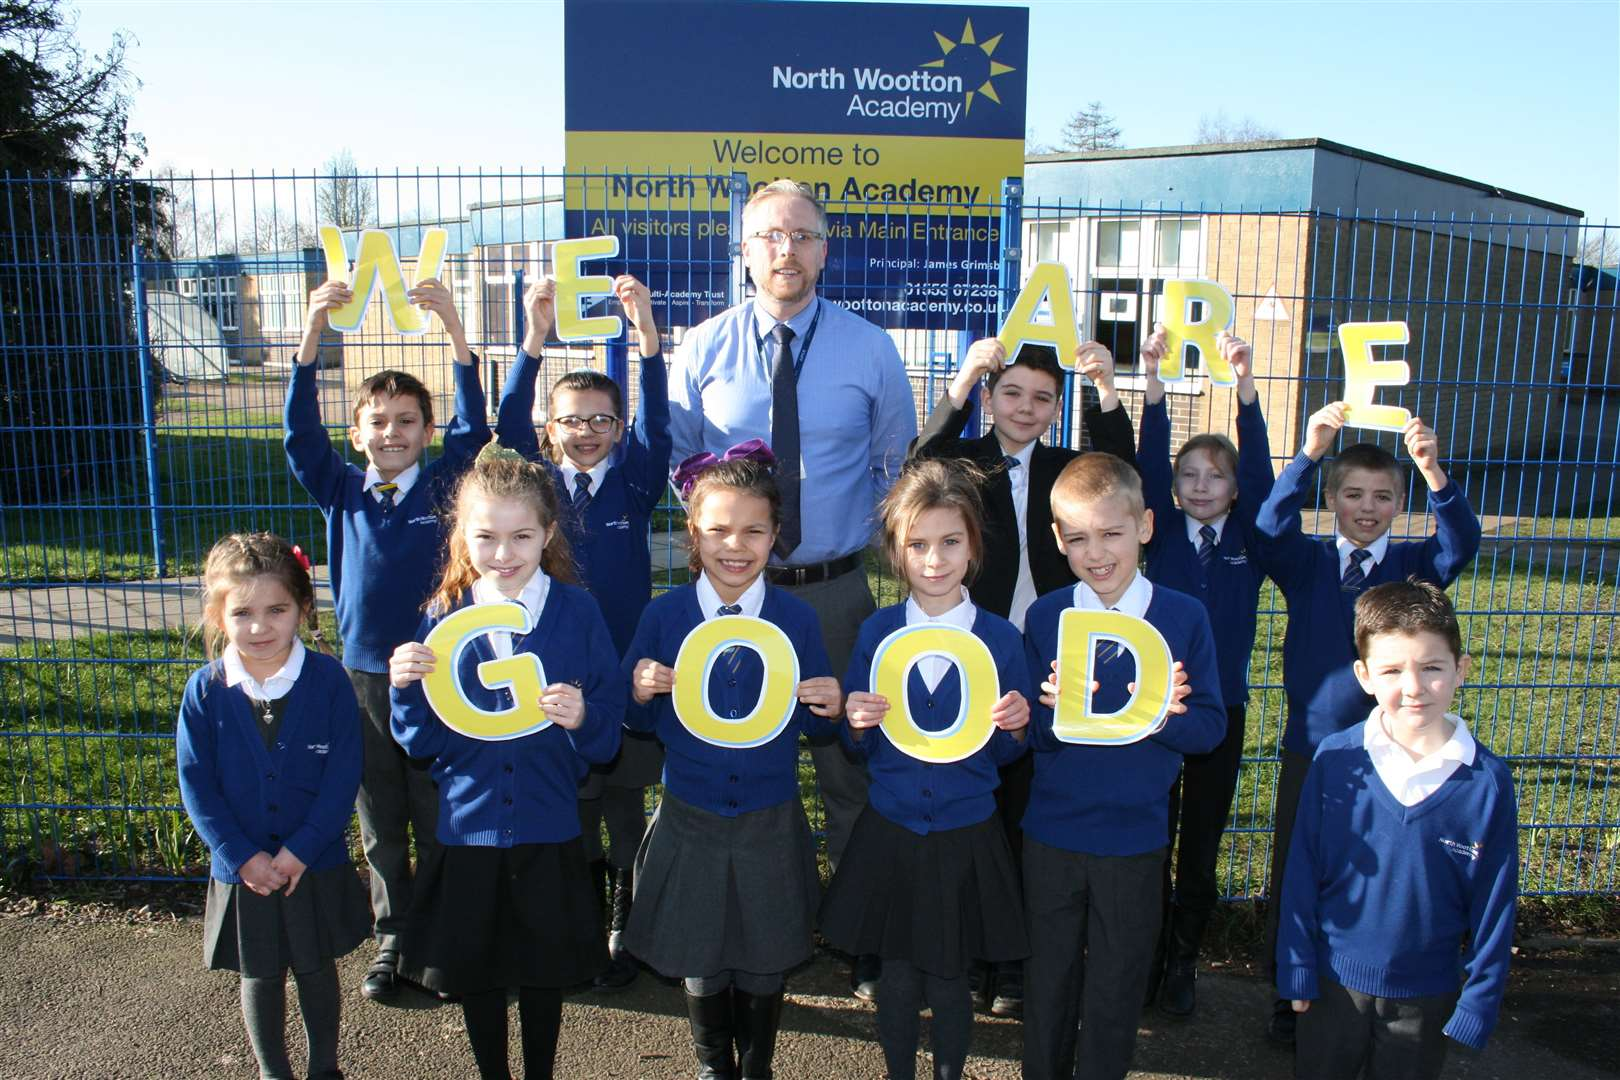 North Wootton Academy pupils celebrate their good Ofsted rating with principal James Grimsby